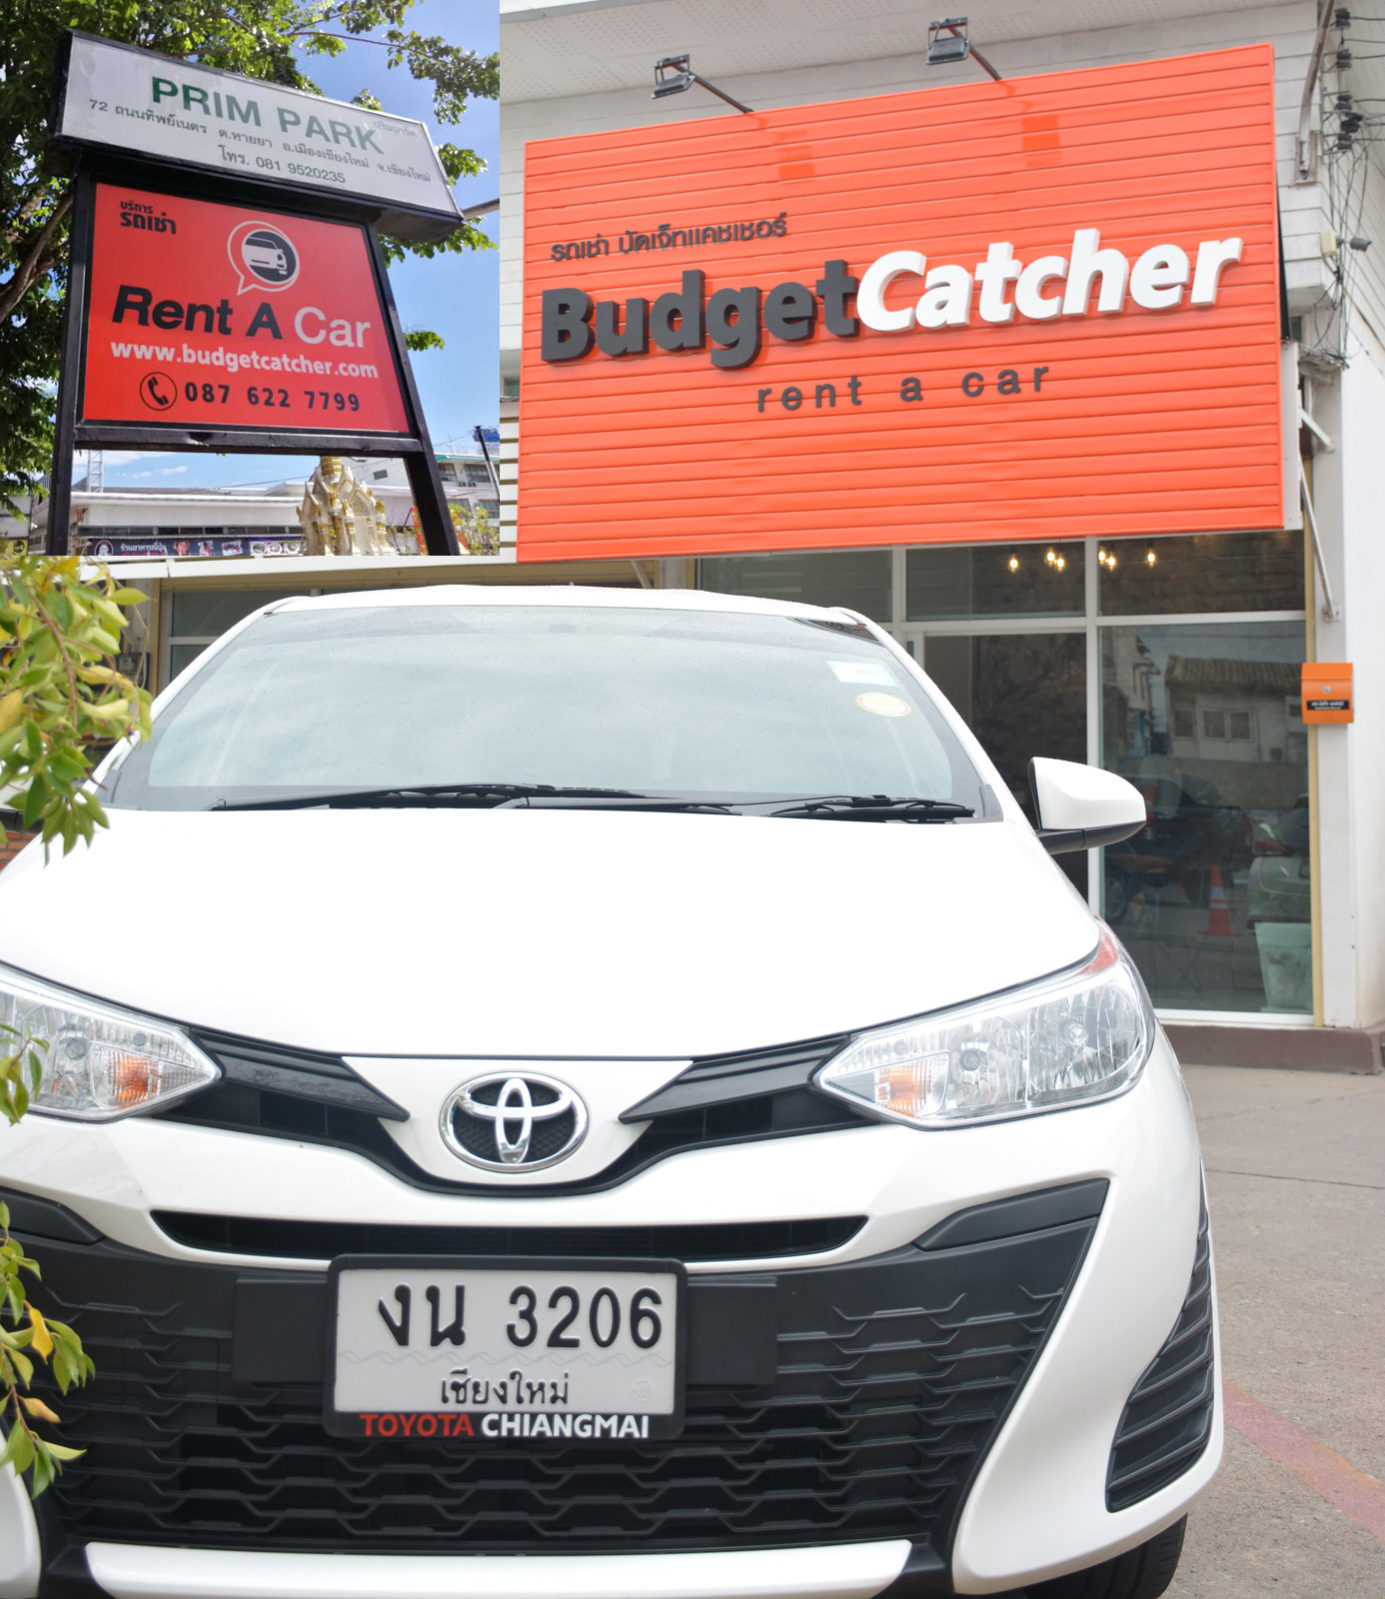 Budgetcatcher Rent a Car new office located in Chiangmai